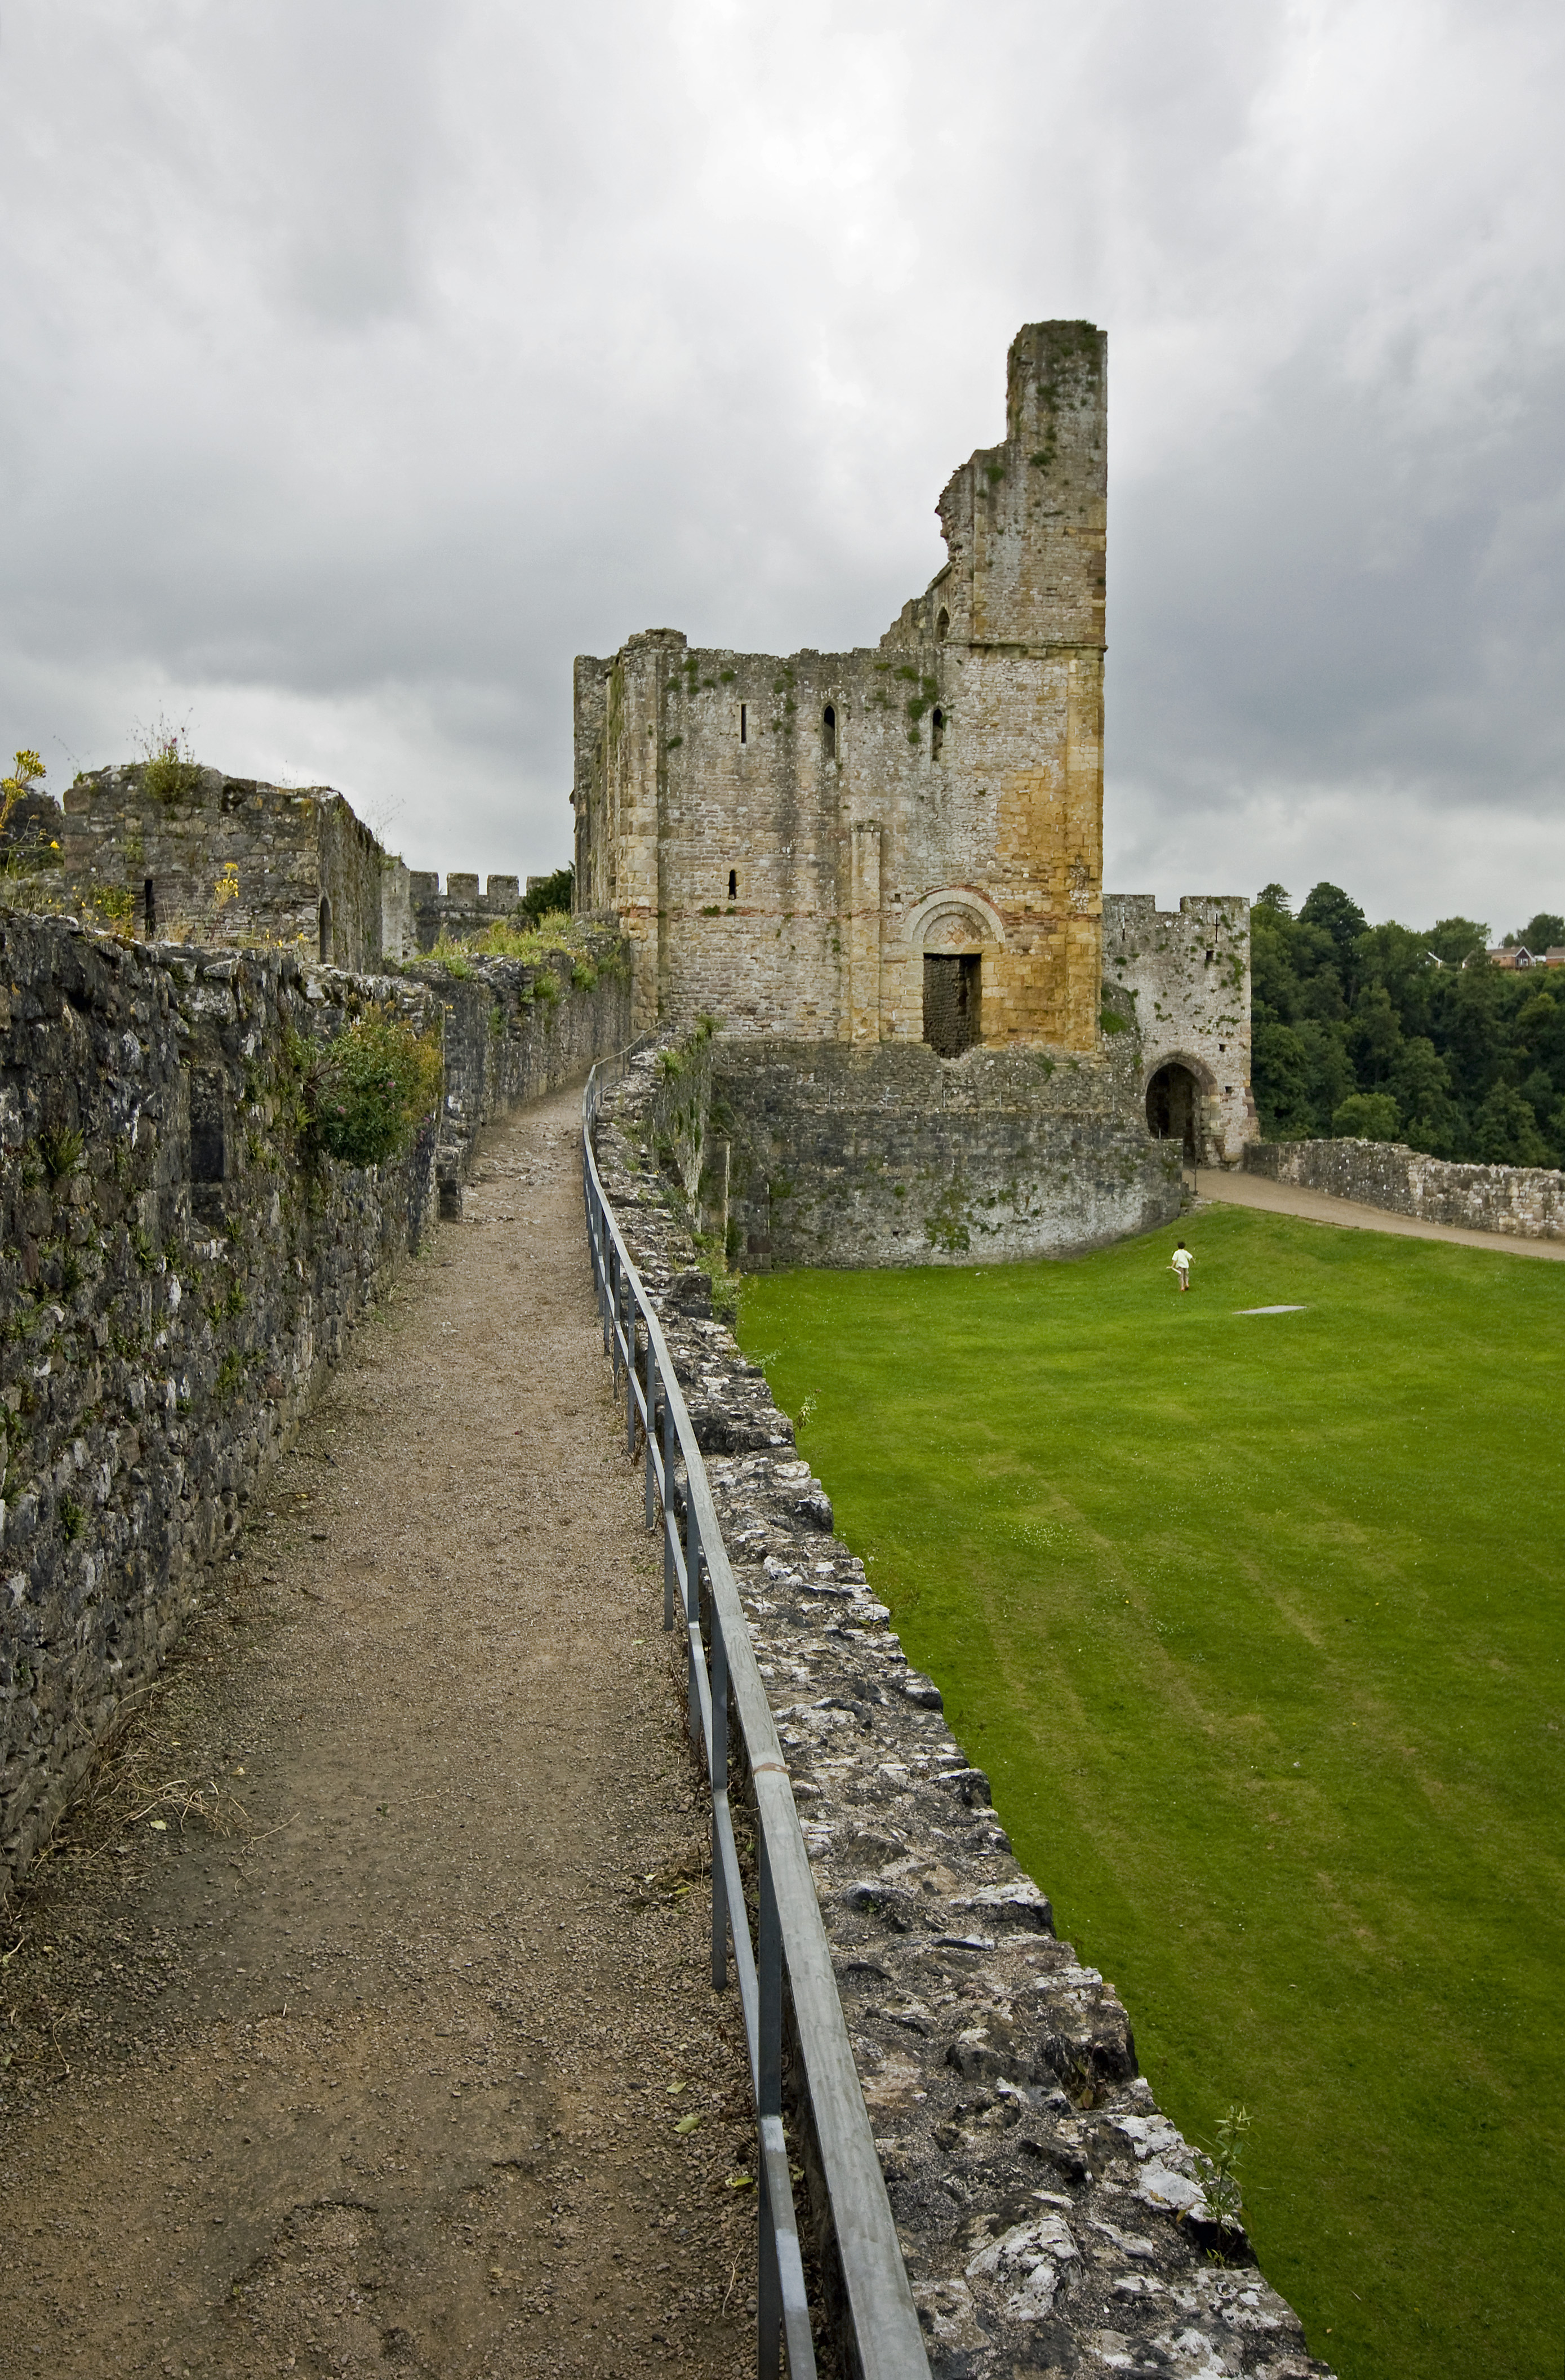 Chepstow United Kingdom  City new picture : IMG 1333 Chepstow Castle Wales | Chepstow Castle in Wales. | Flickr ...